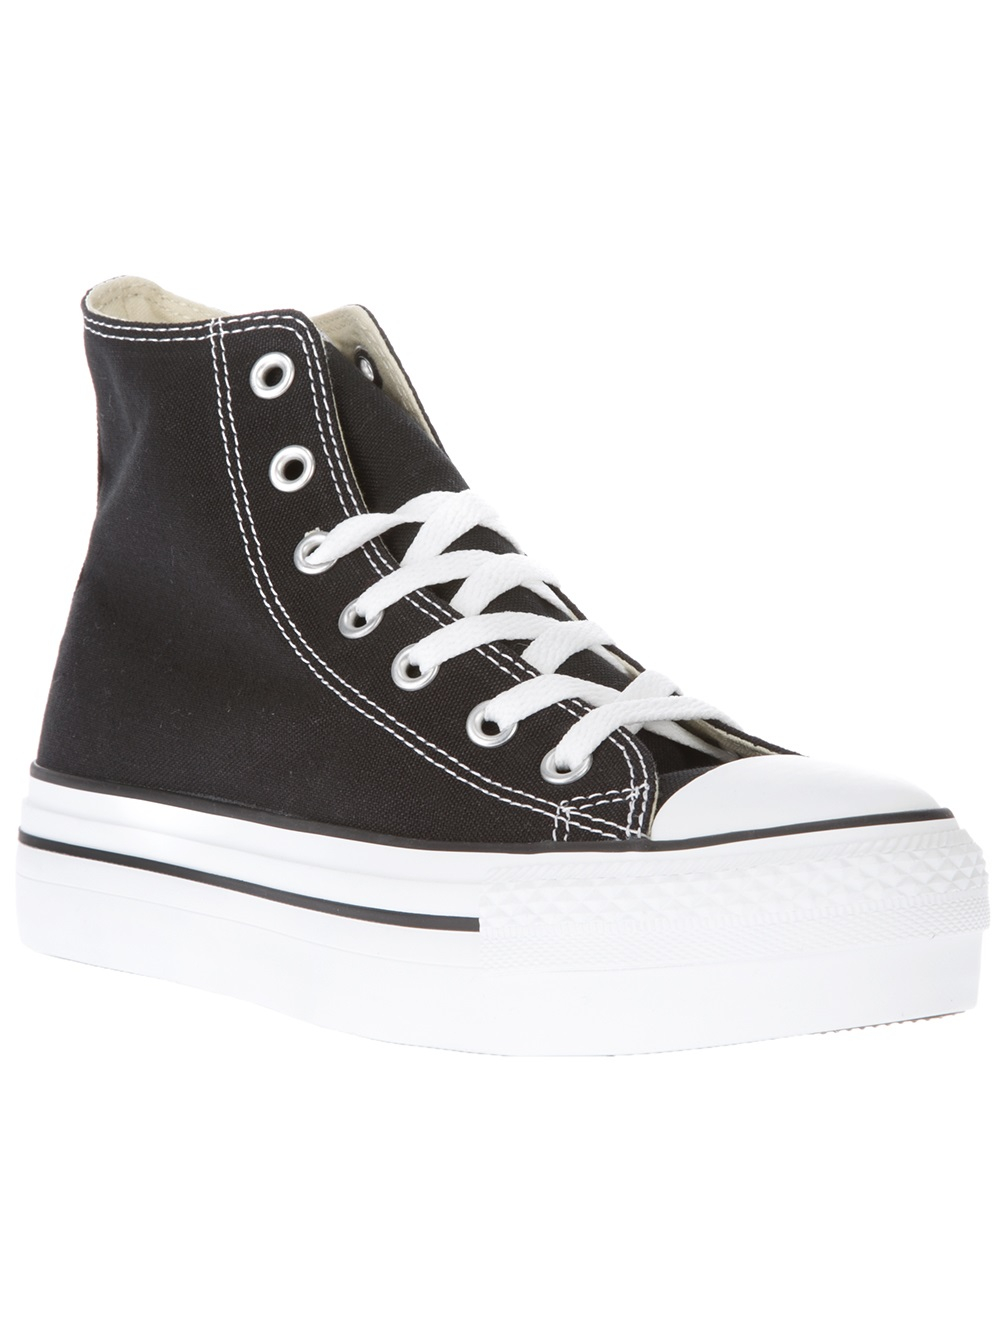 VANS Sk8-Hi Platform Checkered Womens Shoes $ VANS Checkerboard Slip-On Black & Off White Shoes CONVERSE Chuck Taylor All Star Black High Top Shoes $ CONVERSE Chuck Taylor All Star Lift Faux Leather White Womens High Top Shoes These women's high tops and slip on sneakers looks are awesome in that they're both unique and.